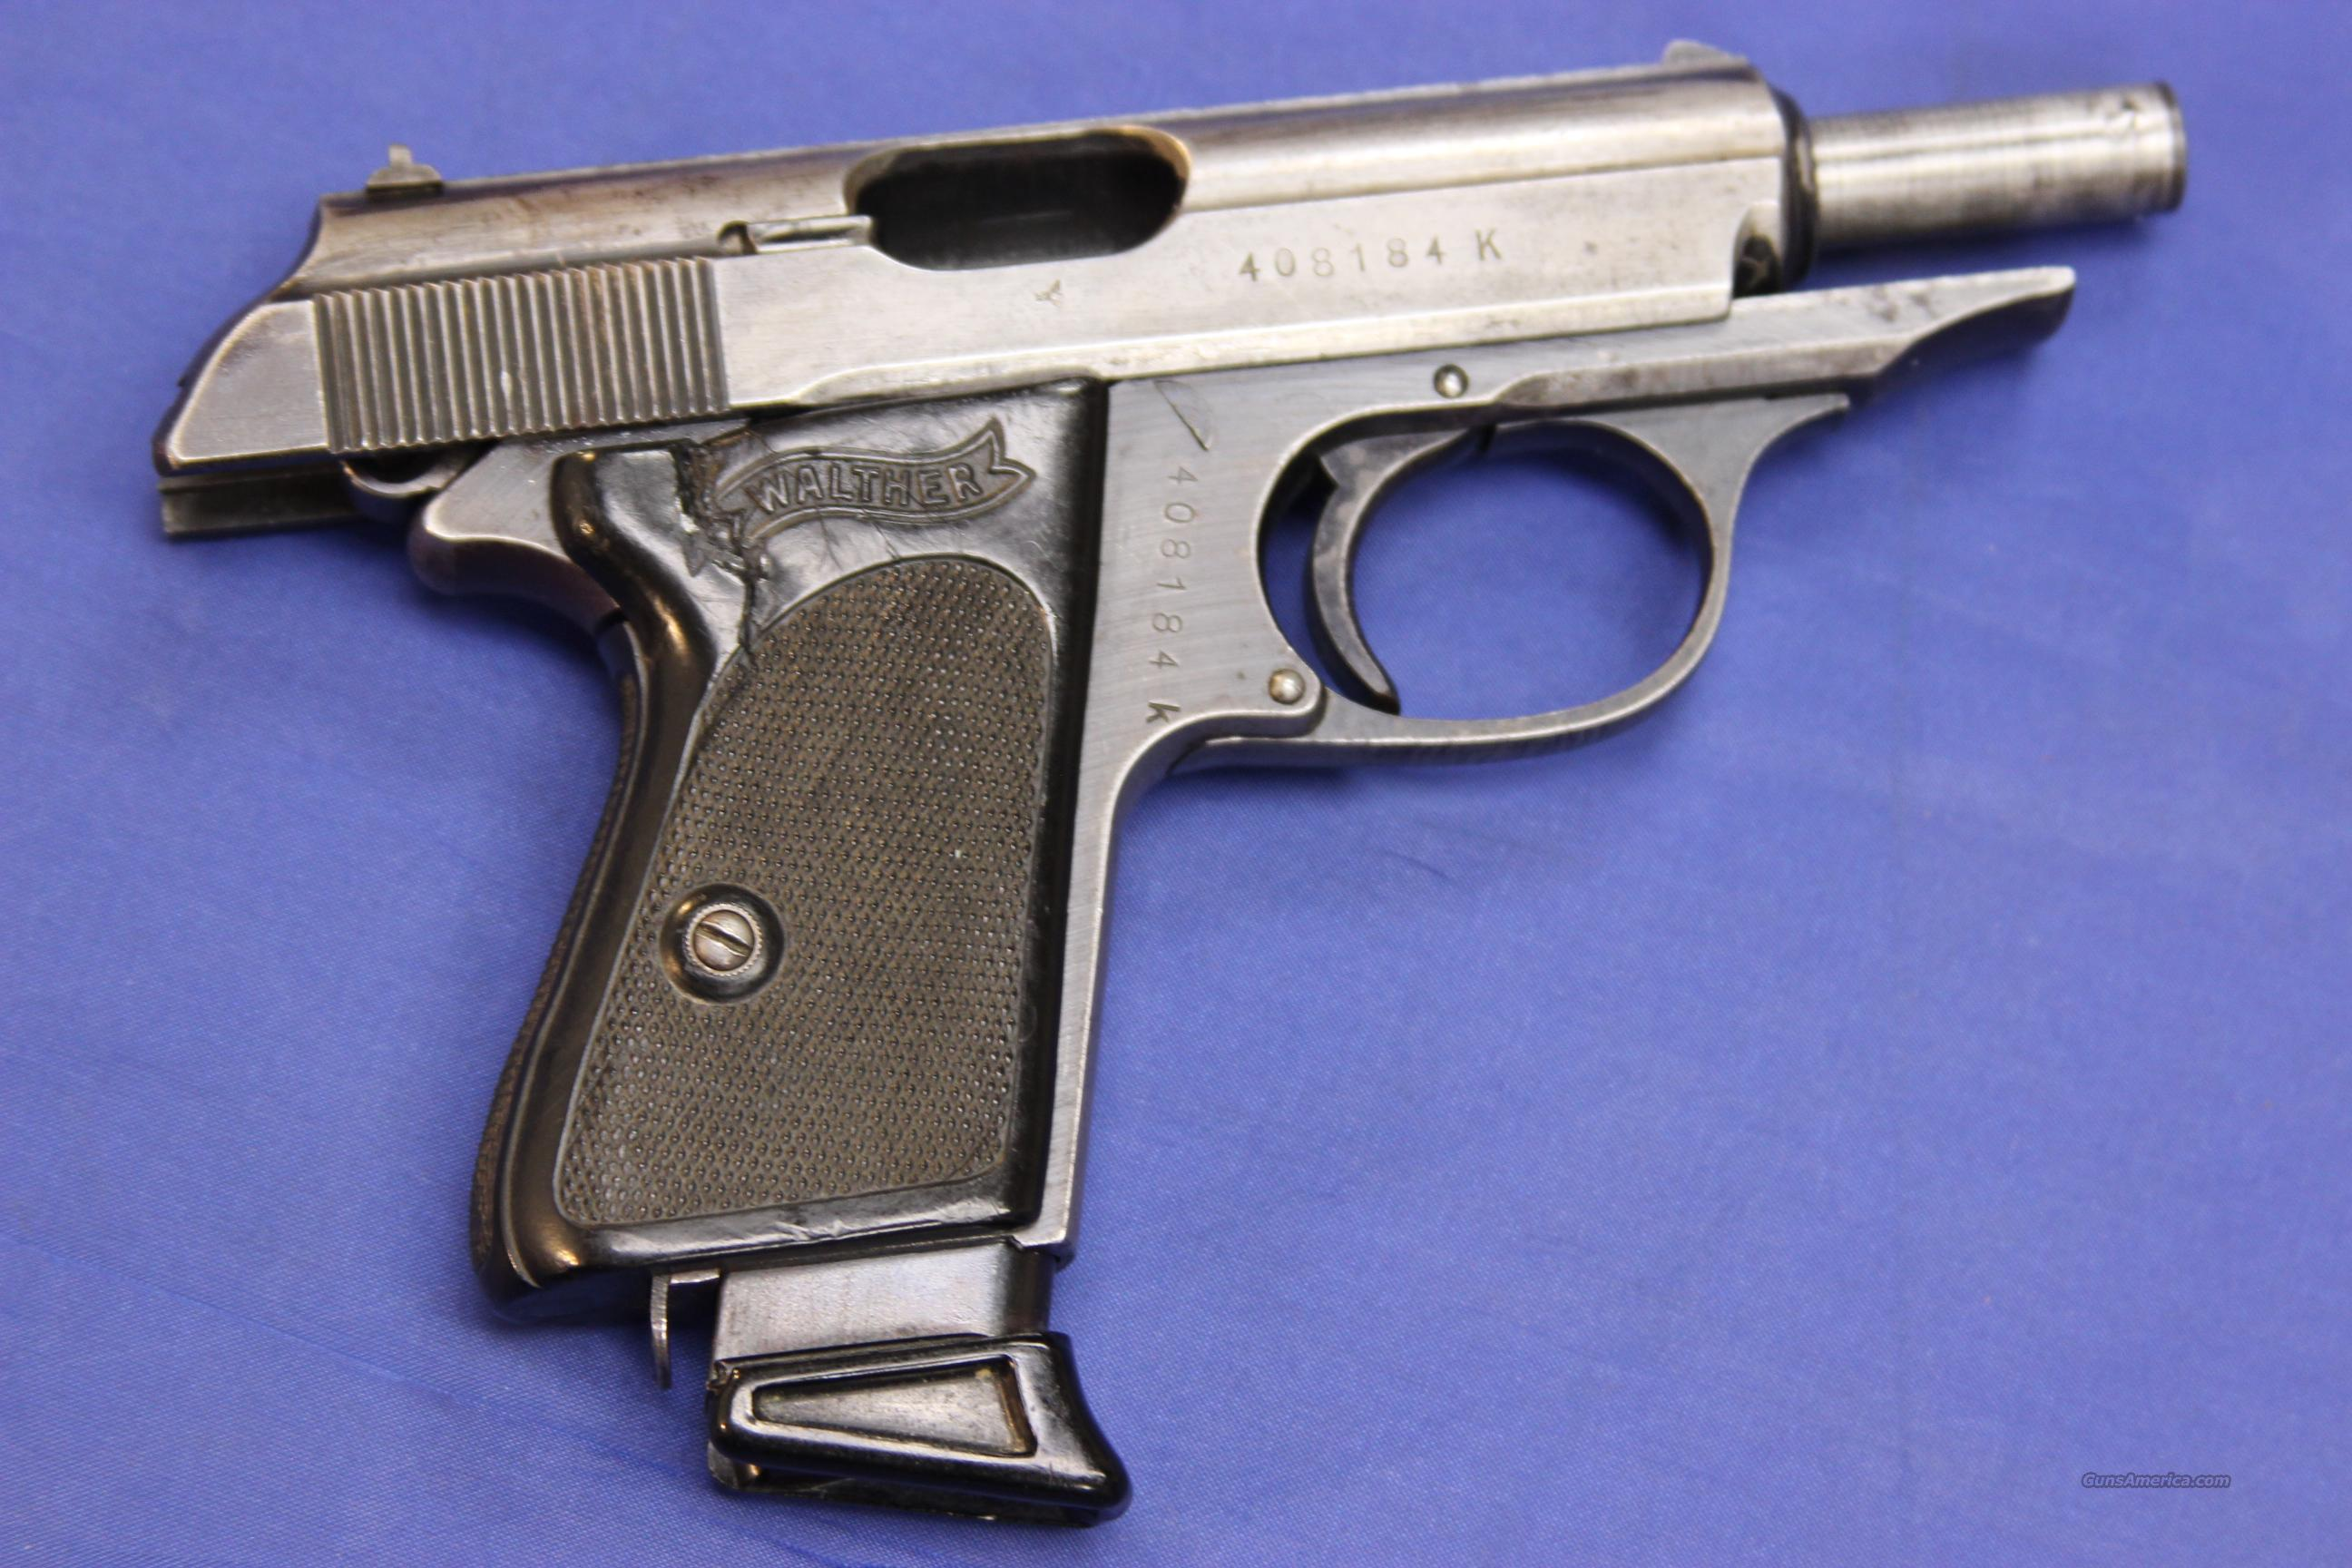 WALTHER STAINLESS PPK 7.65MM  Guns > Pistols > Walther Pistols > Post WWII > PPK Series